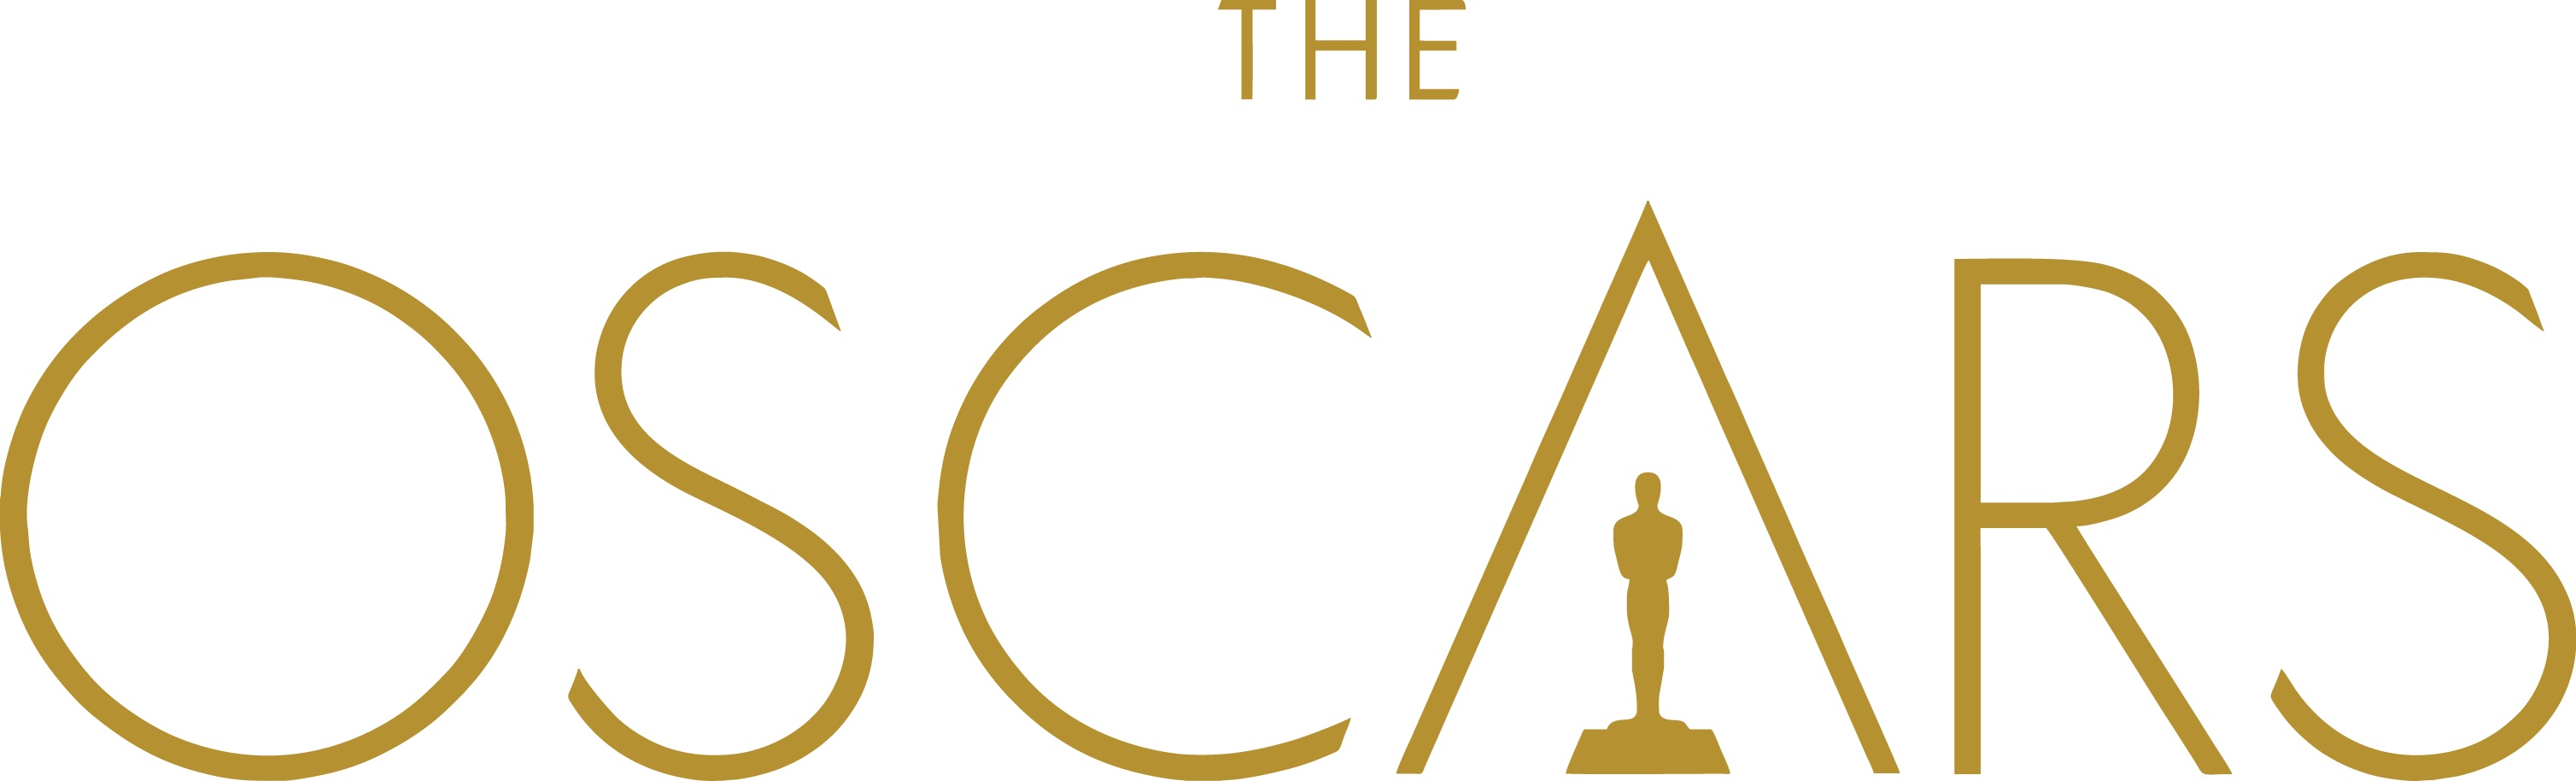 Oscars 2021 - more modern and diverse: Nomadsland wins Best Film and more